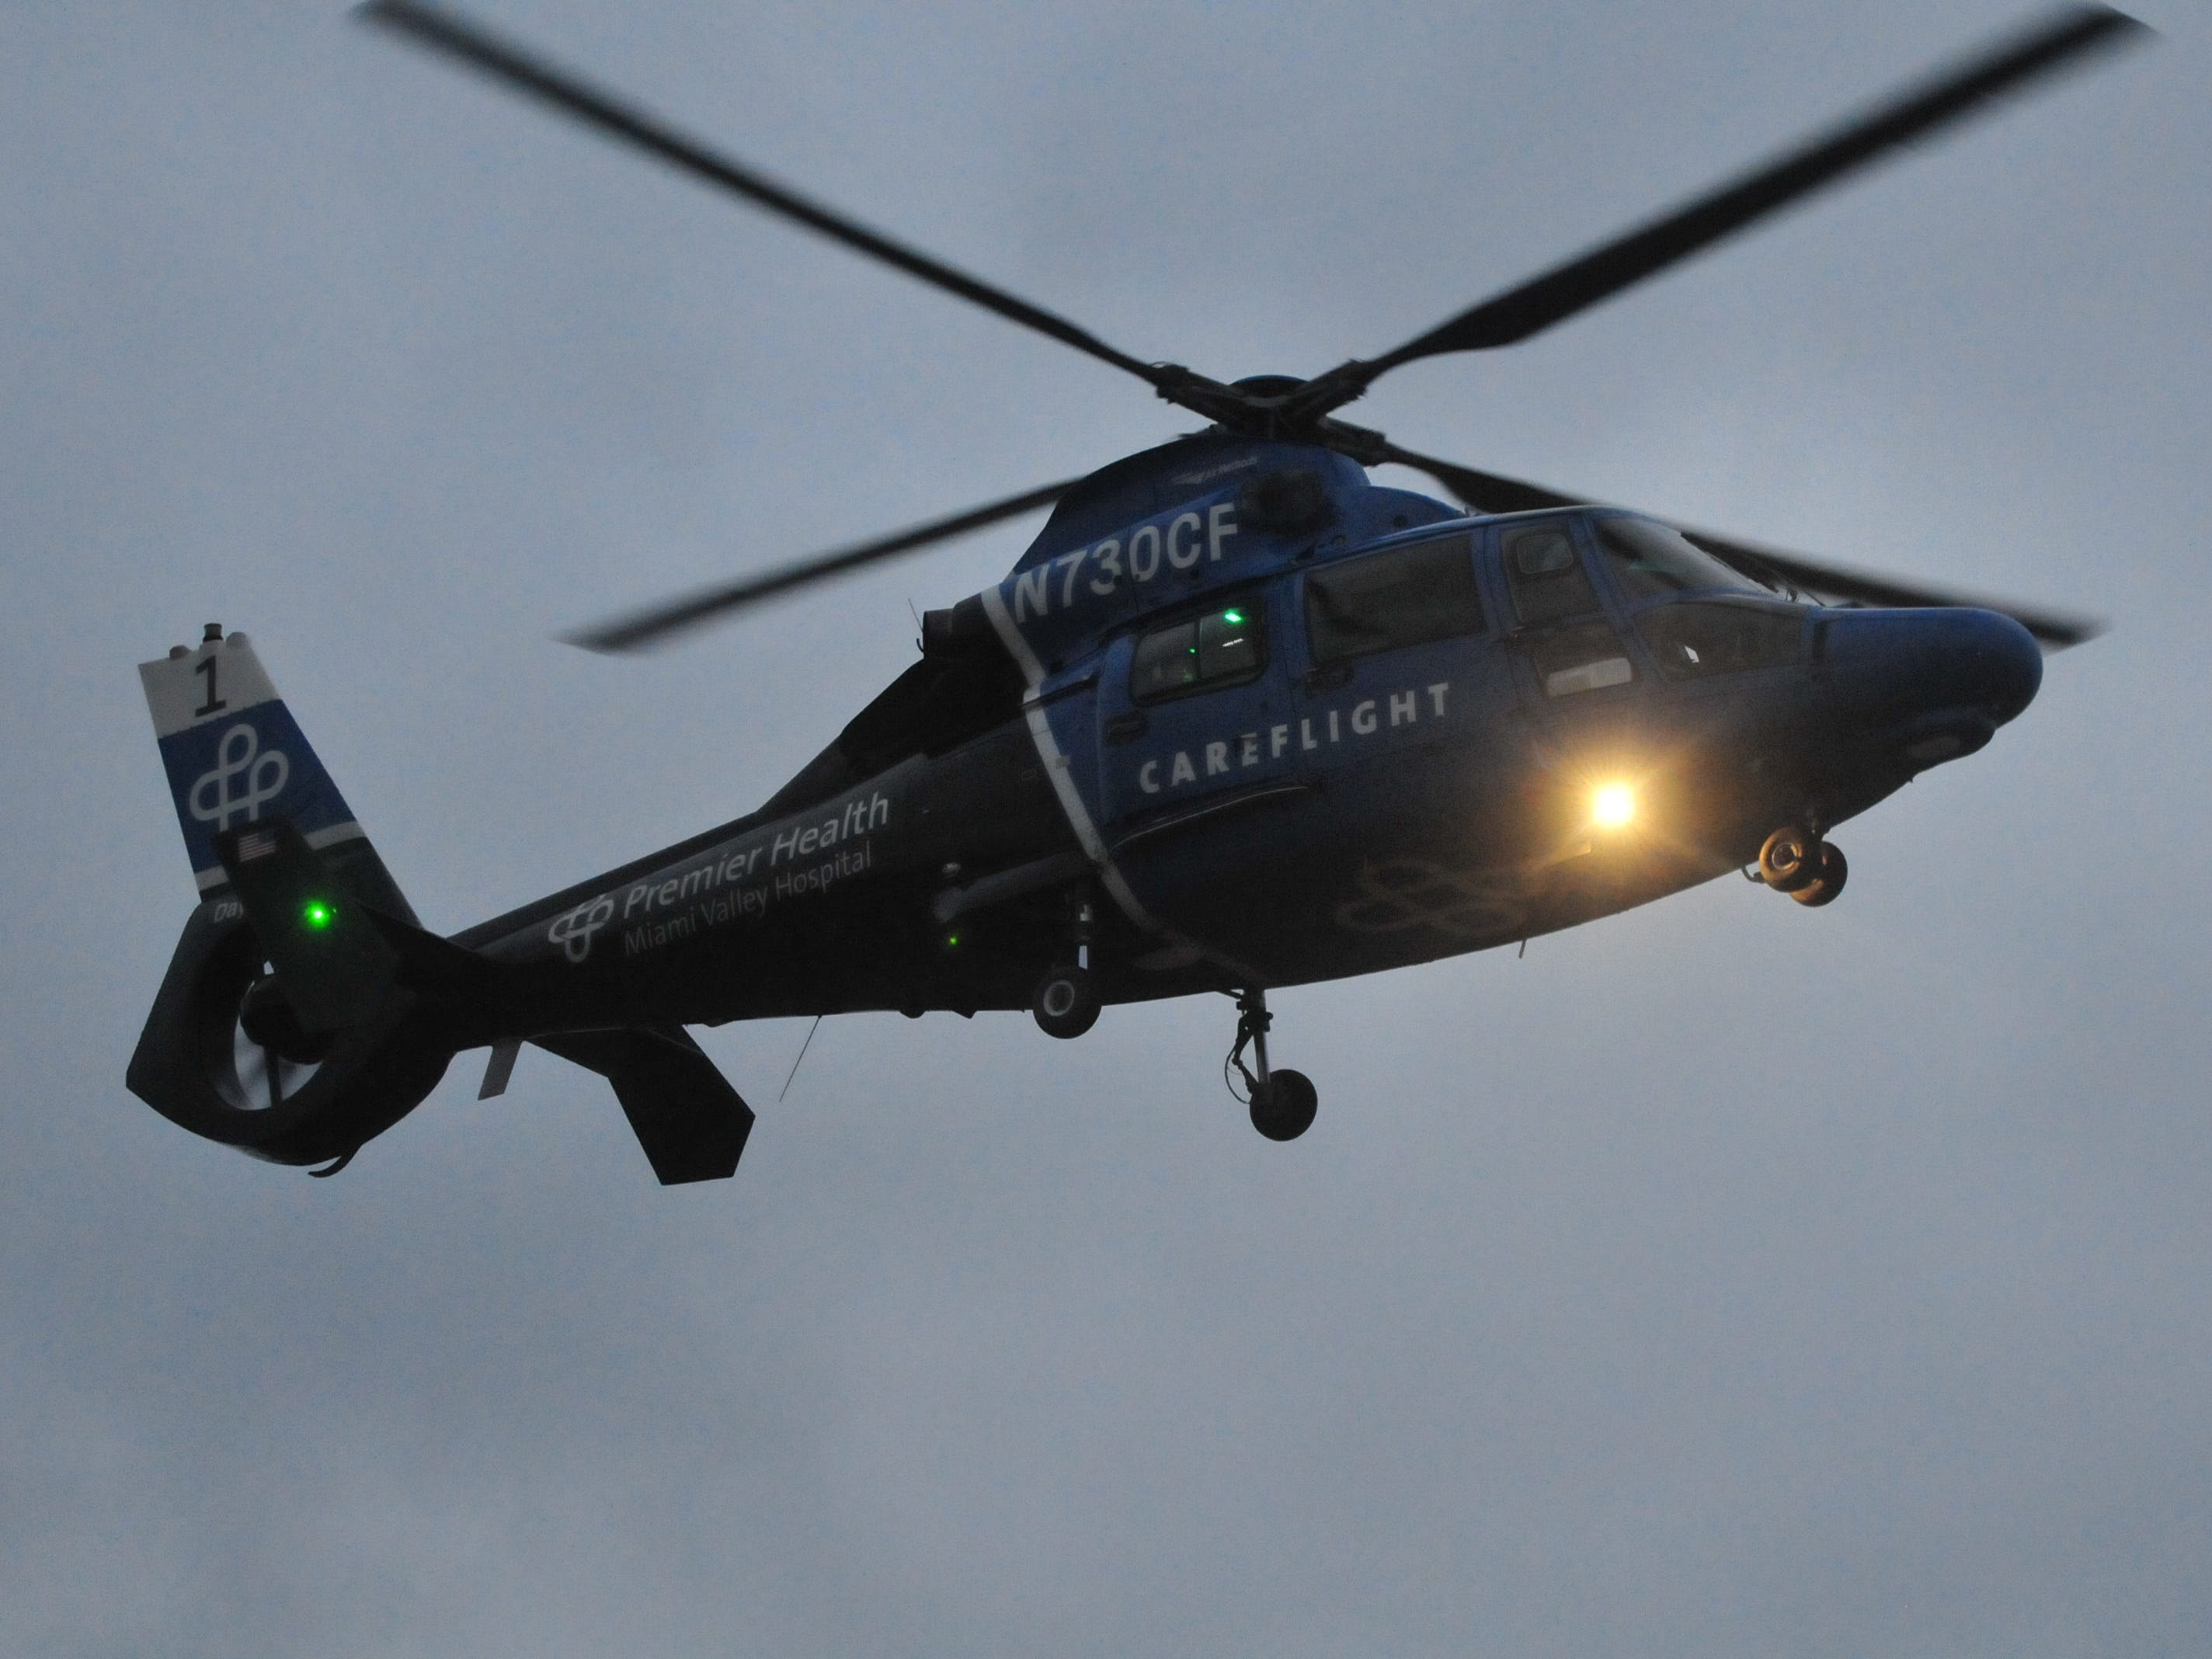 A Careflight medical helicopter descends for a landing Tuesday west of Salisbury Road.